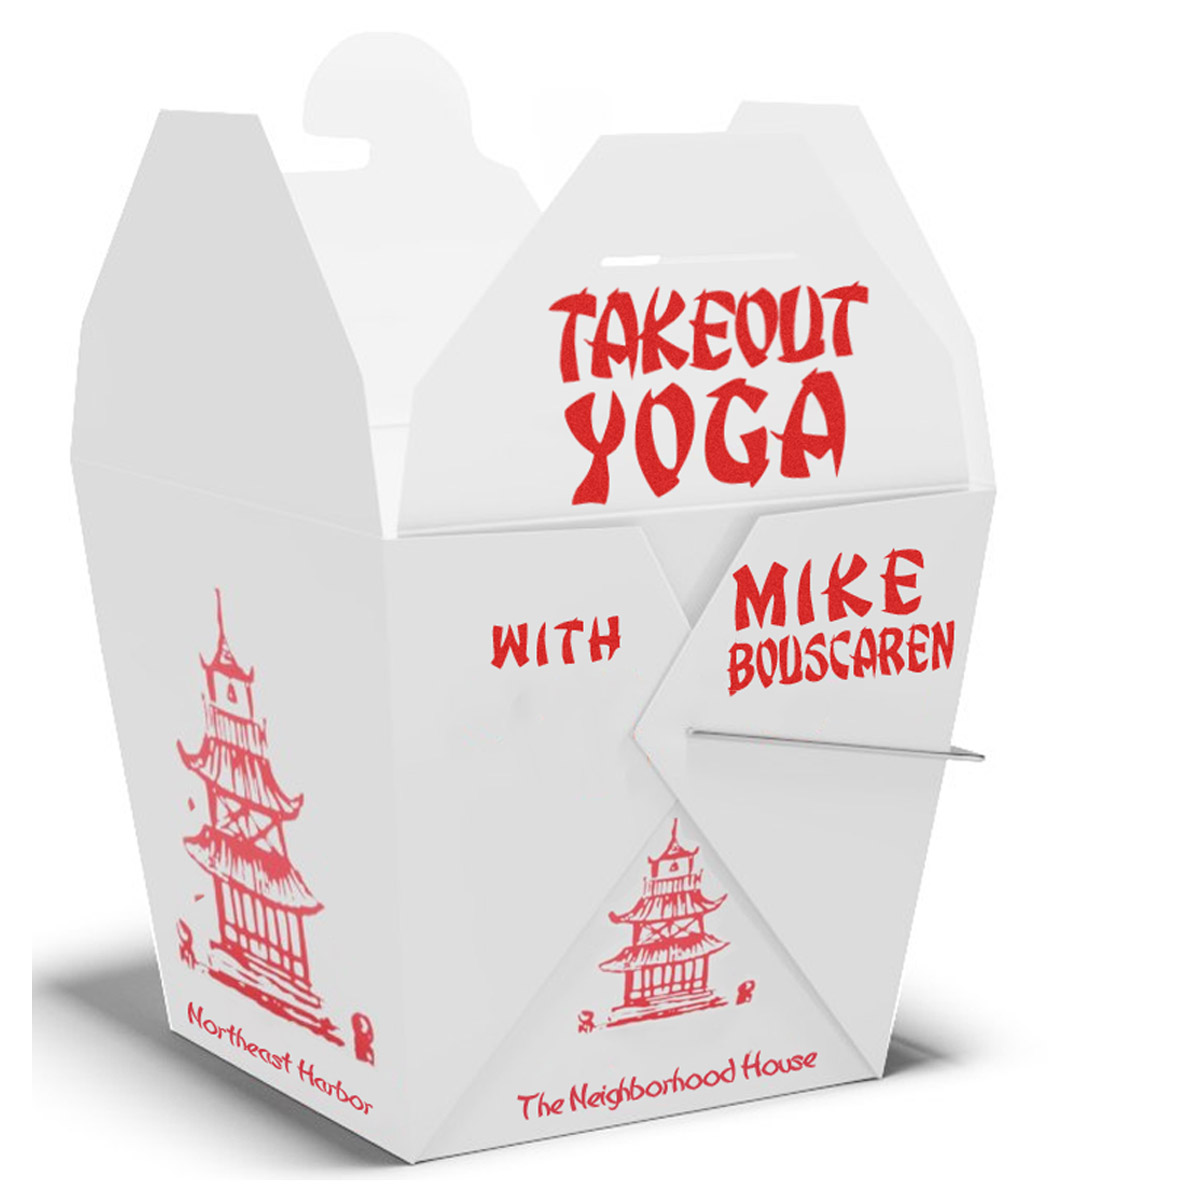 """Takeout"" Yoga Private Seessions - Instructor Mike Bouscaren is generously offering small group (1-4 or 5+ person) classes in the location of your choice! The one hour sessions are available for a ""buy now"" price of $100 for 1-4 students, or $150 for 5+ student, and you can choose what style of class you'd prefer— everything from meditation instruction, flow yoga, passive stretch, or even chair yoga."